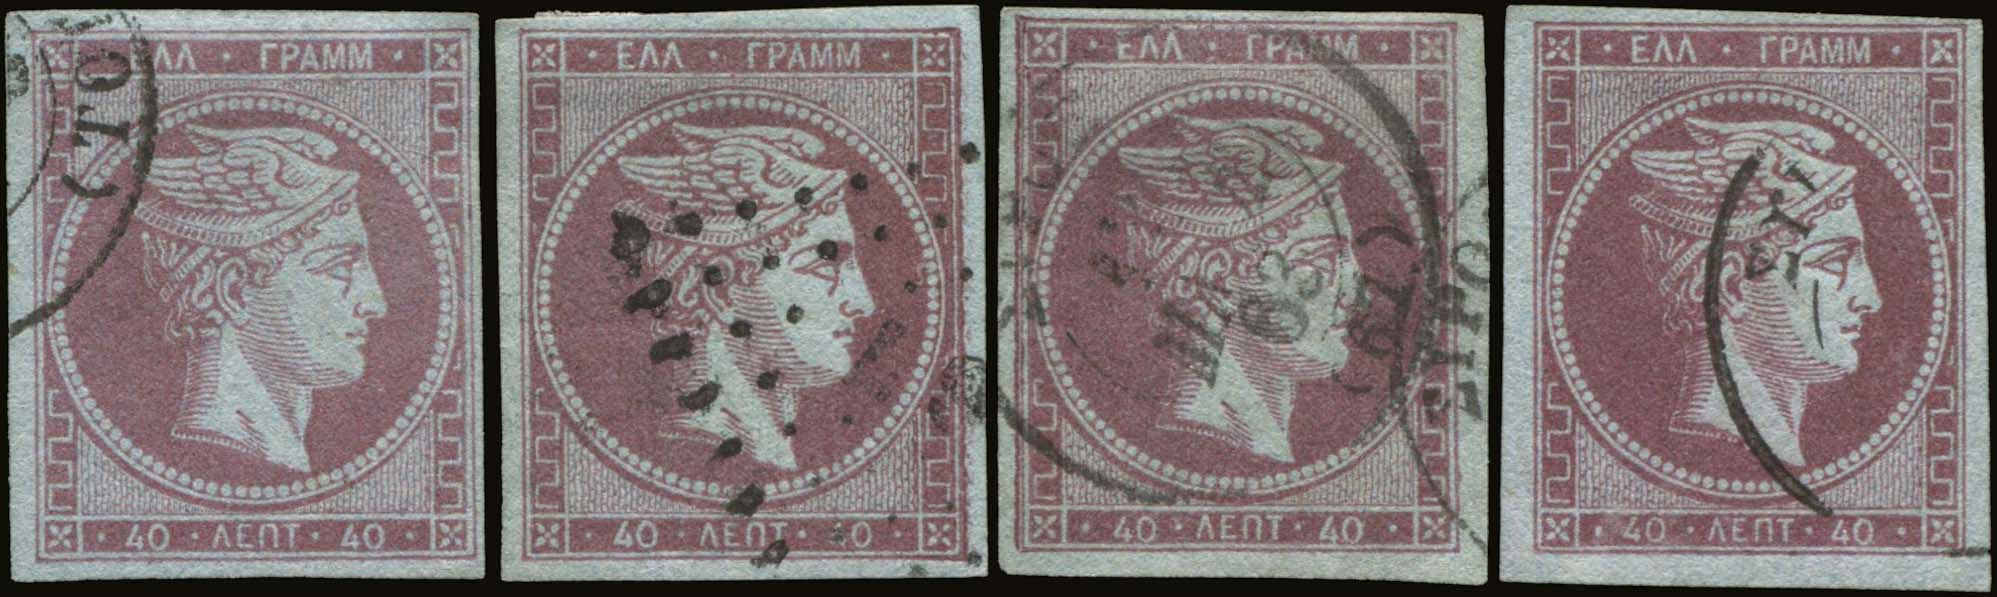 Lot 106 - -  LARGE HERMES HEAD 1862/67 consecutive athens printings -  A. Karamitsos Public Auction 639 General Stamp Sale